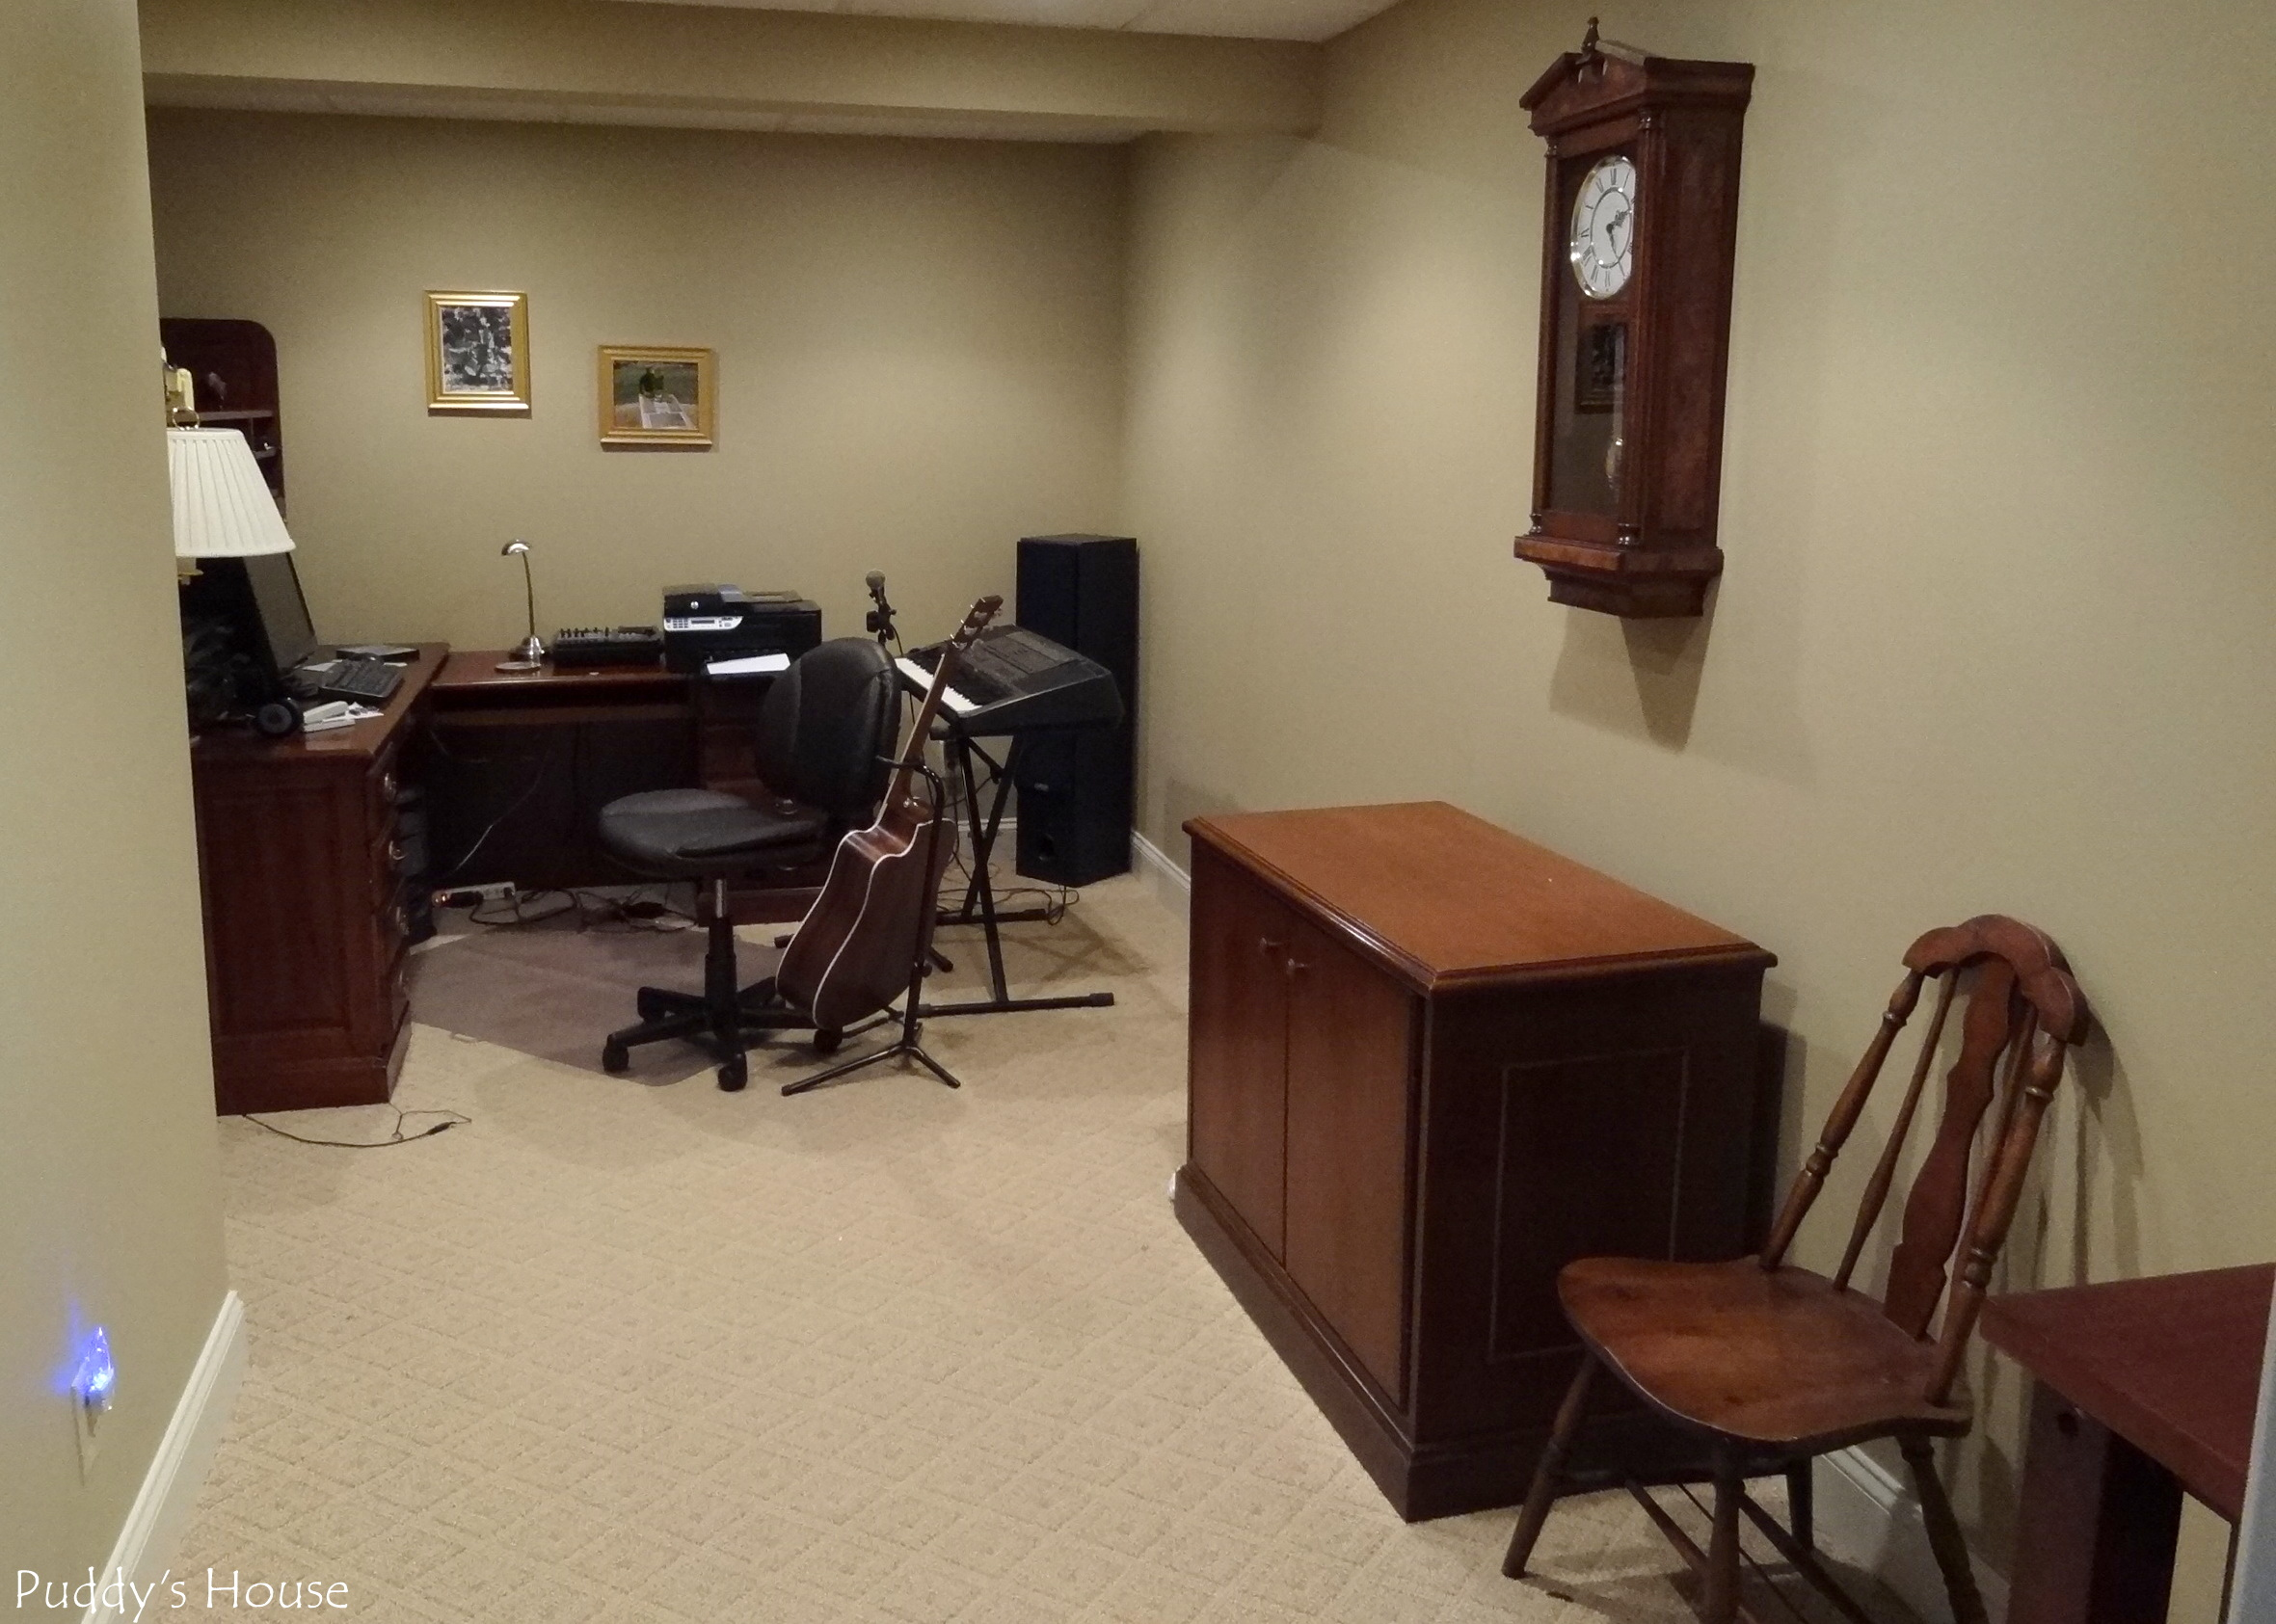 Basement – Music office Room – Puddy s House